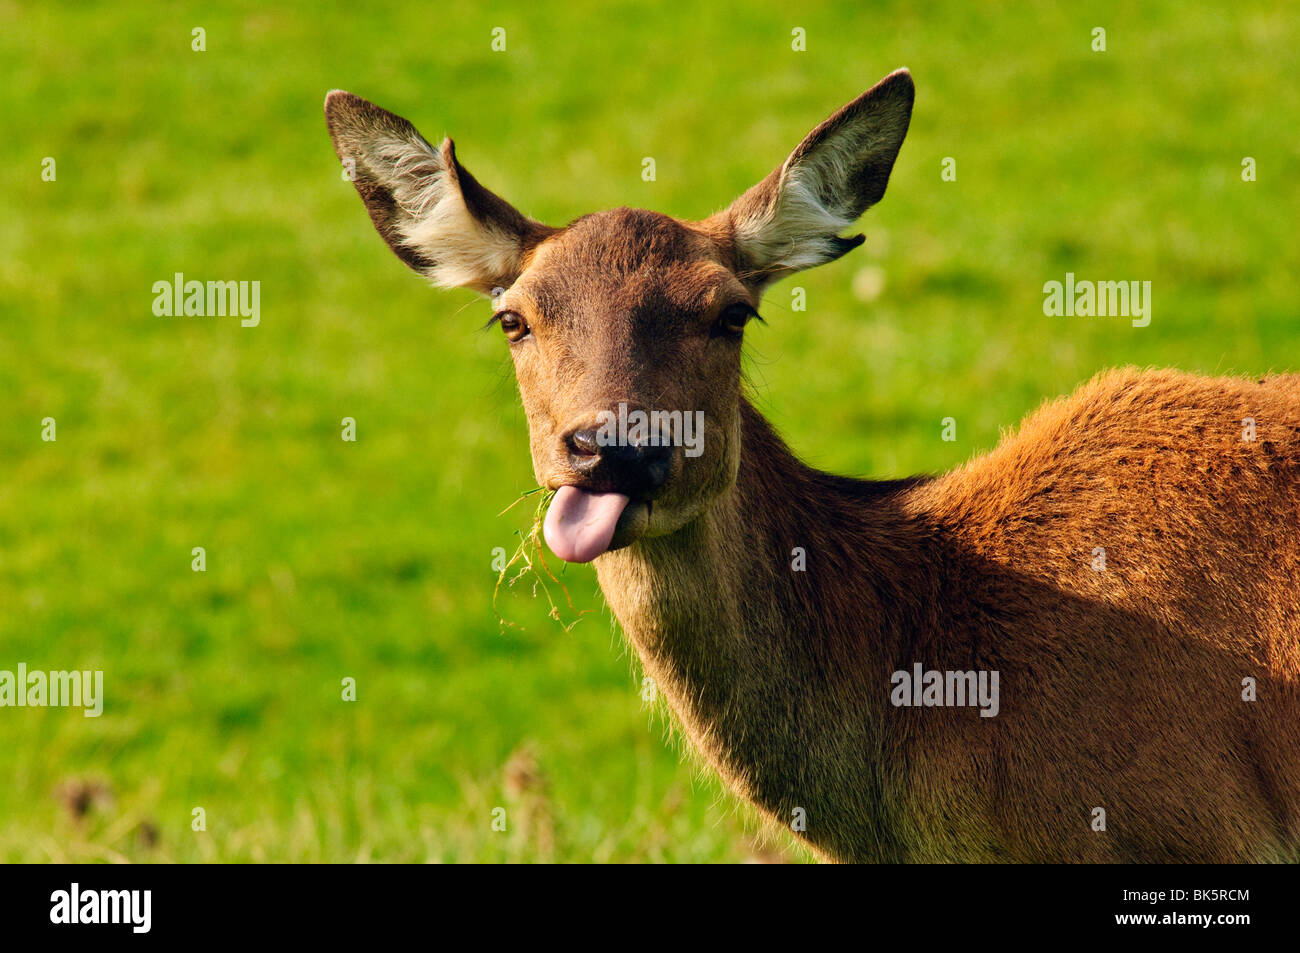 Red Deer hind at Bowland Wild Boar Park, Lancashire, England - Stock Image